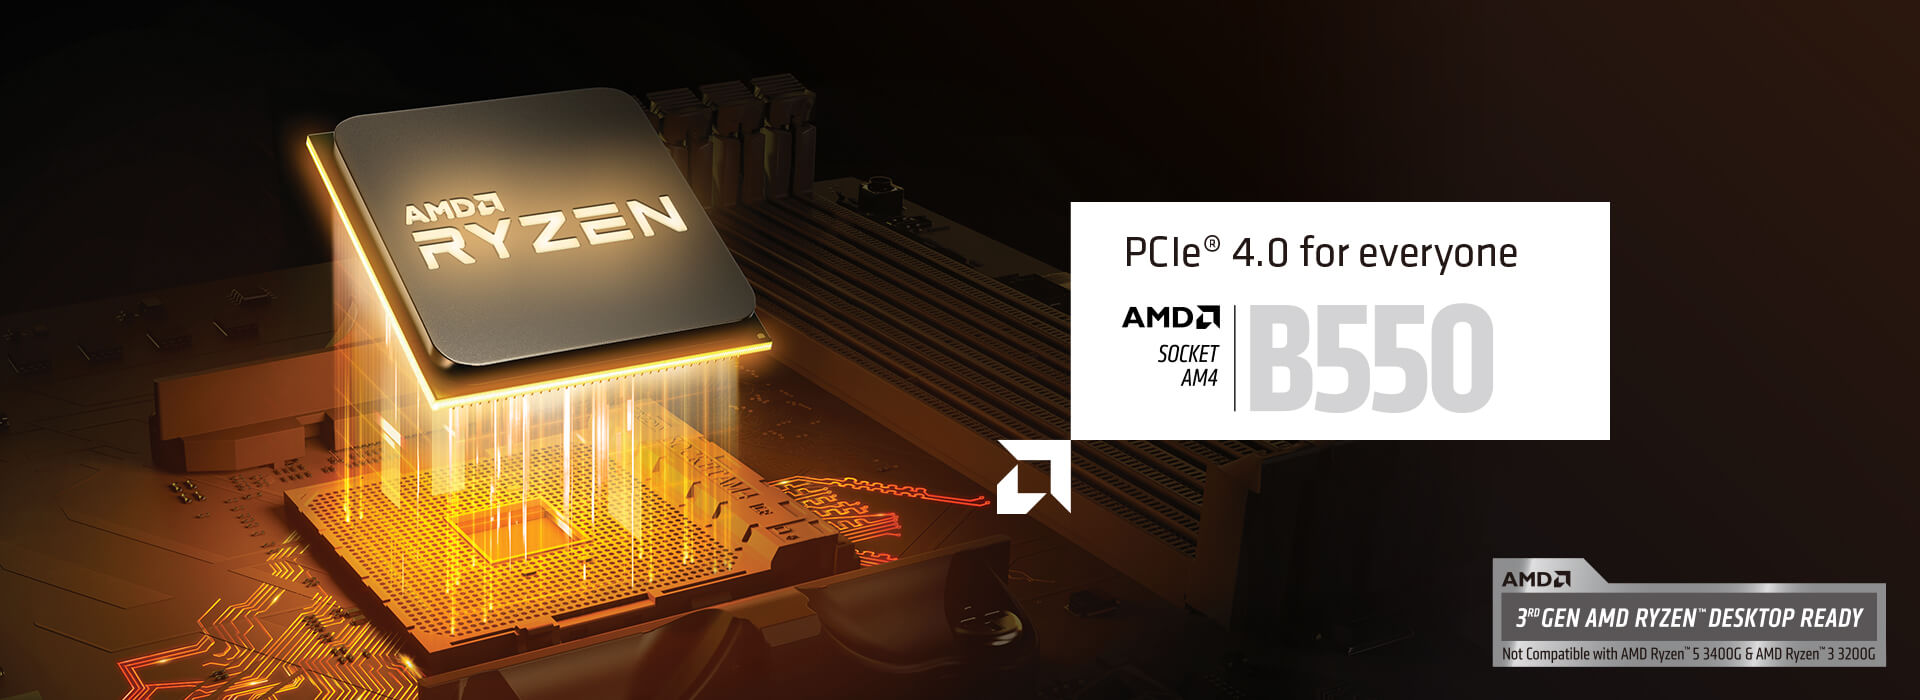 PCIe 4.0 for everyone. AMD SOCKET AM$ B550. 3rd GEN AMD RYZEN DESKTOP READY. Not Compatible with AMD Ryzen 5 3400G & AMD Ryzen 3 3200G.